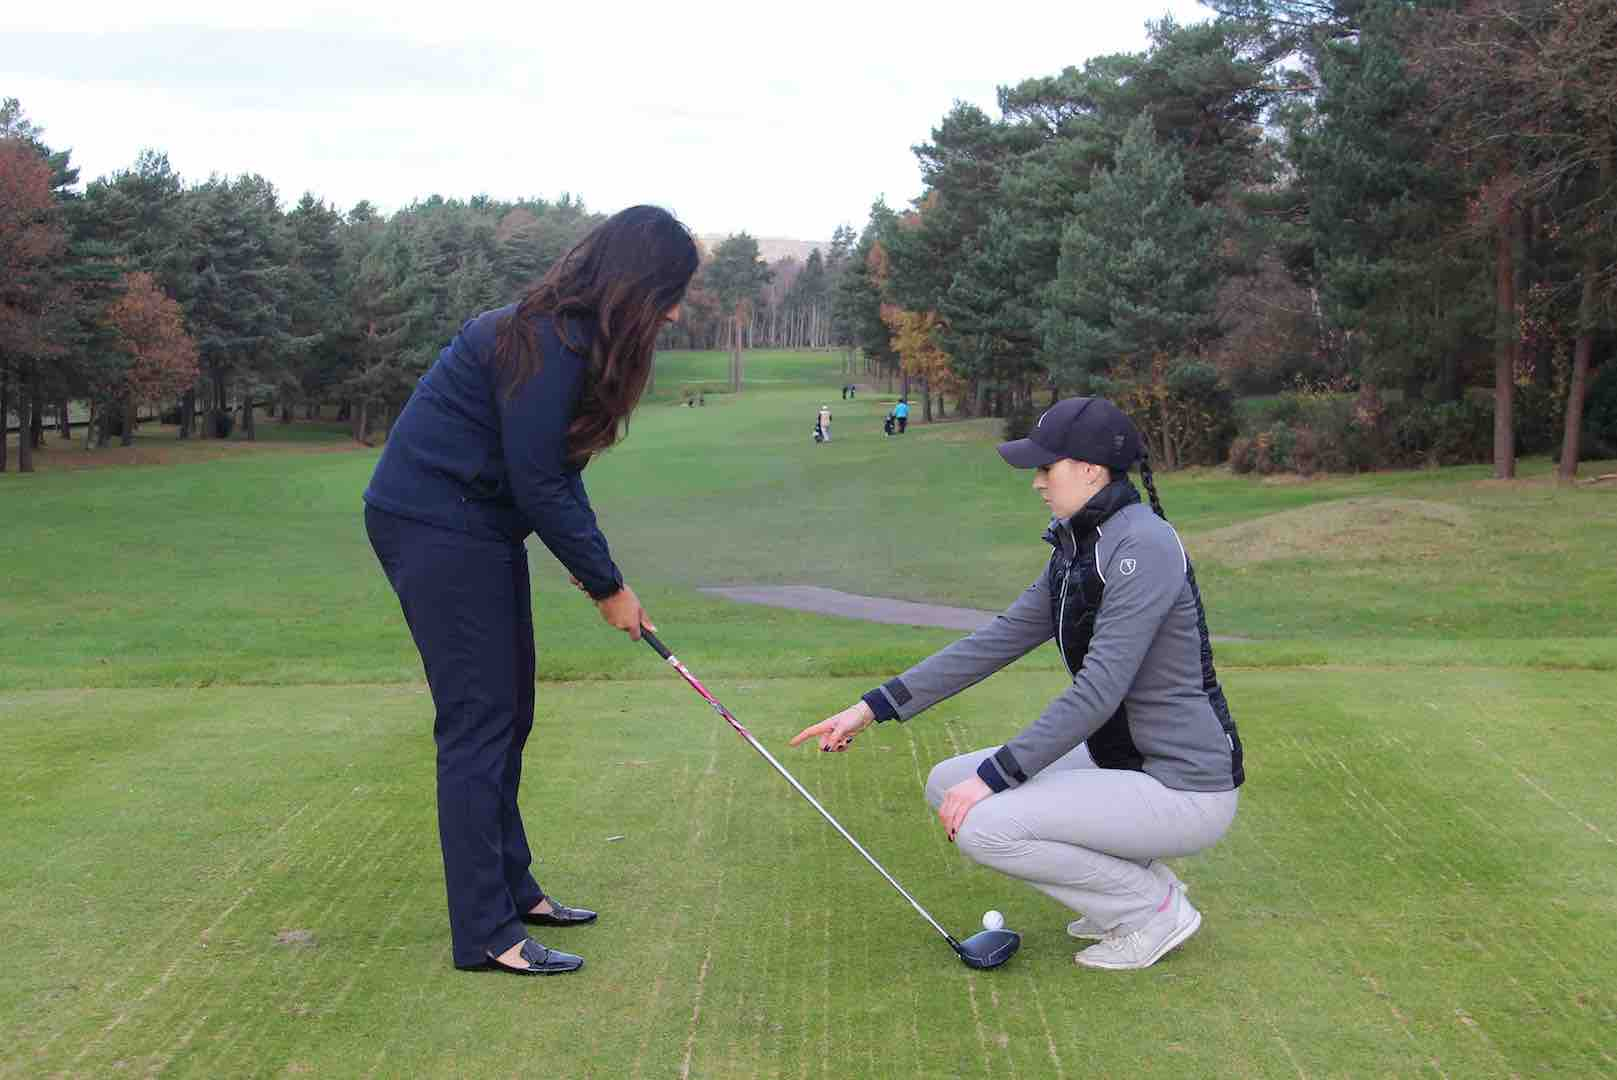 It's Ladies' Day at Foxhills for new golfers